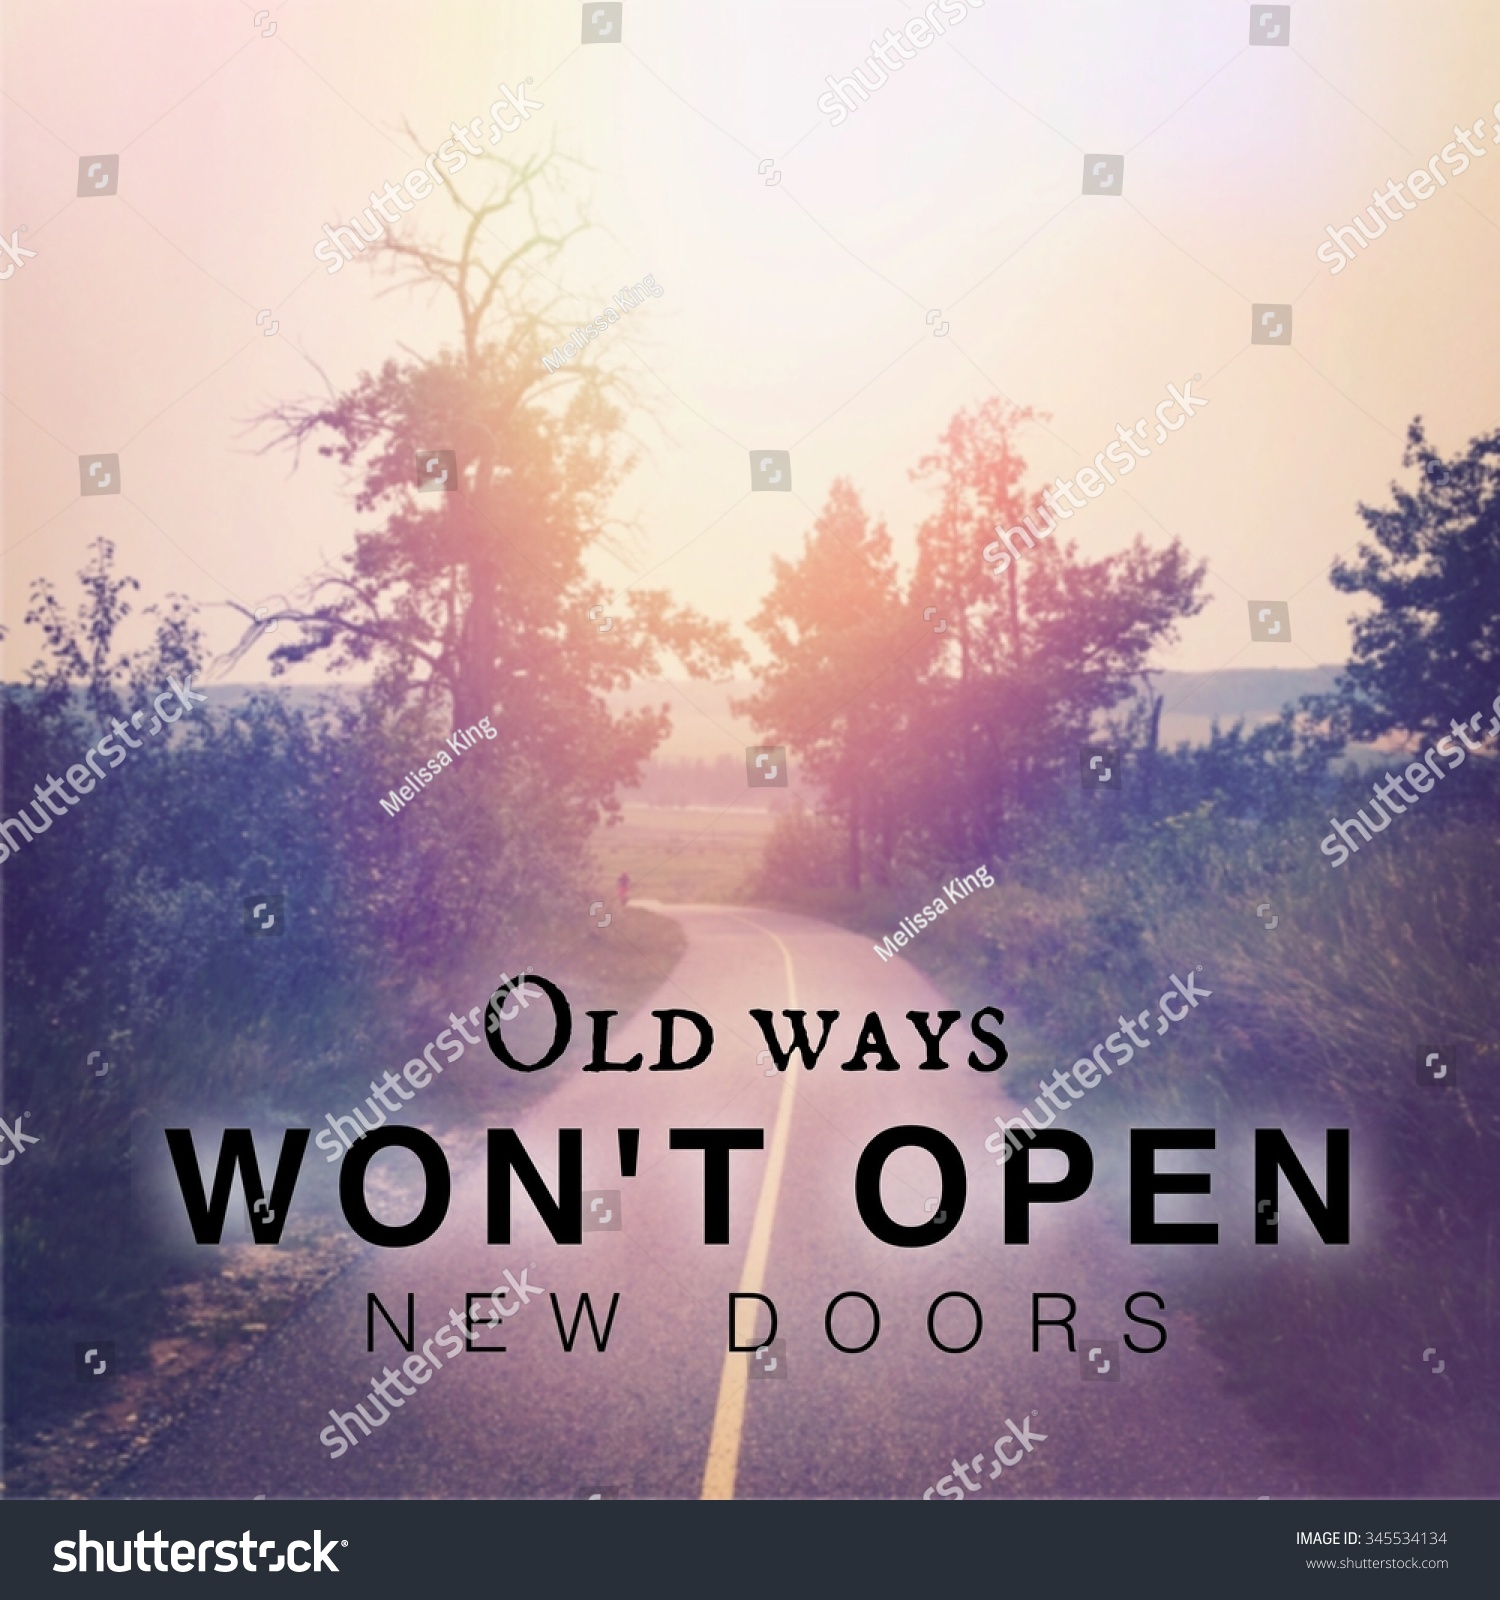 At T Stock Price Quote: Inspirational Typographic Quote Old Ways Wont Stock Photo